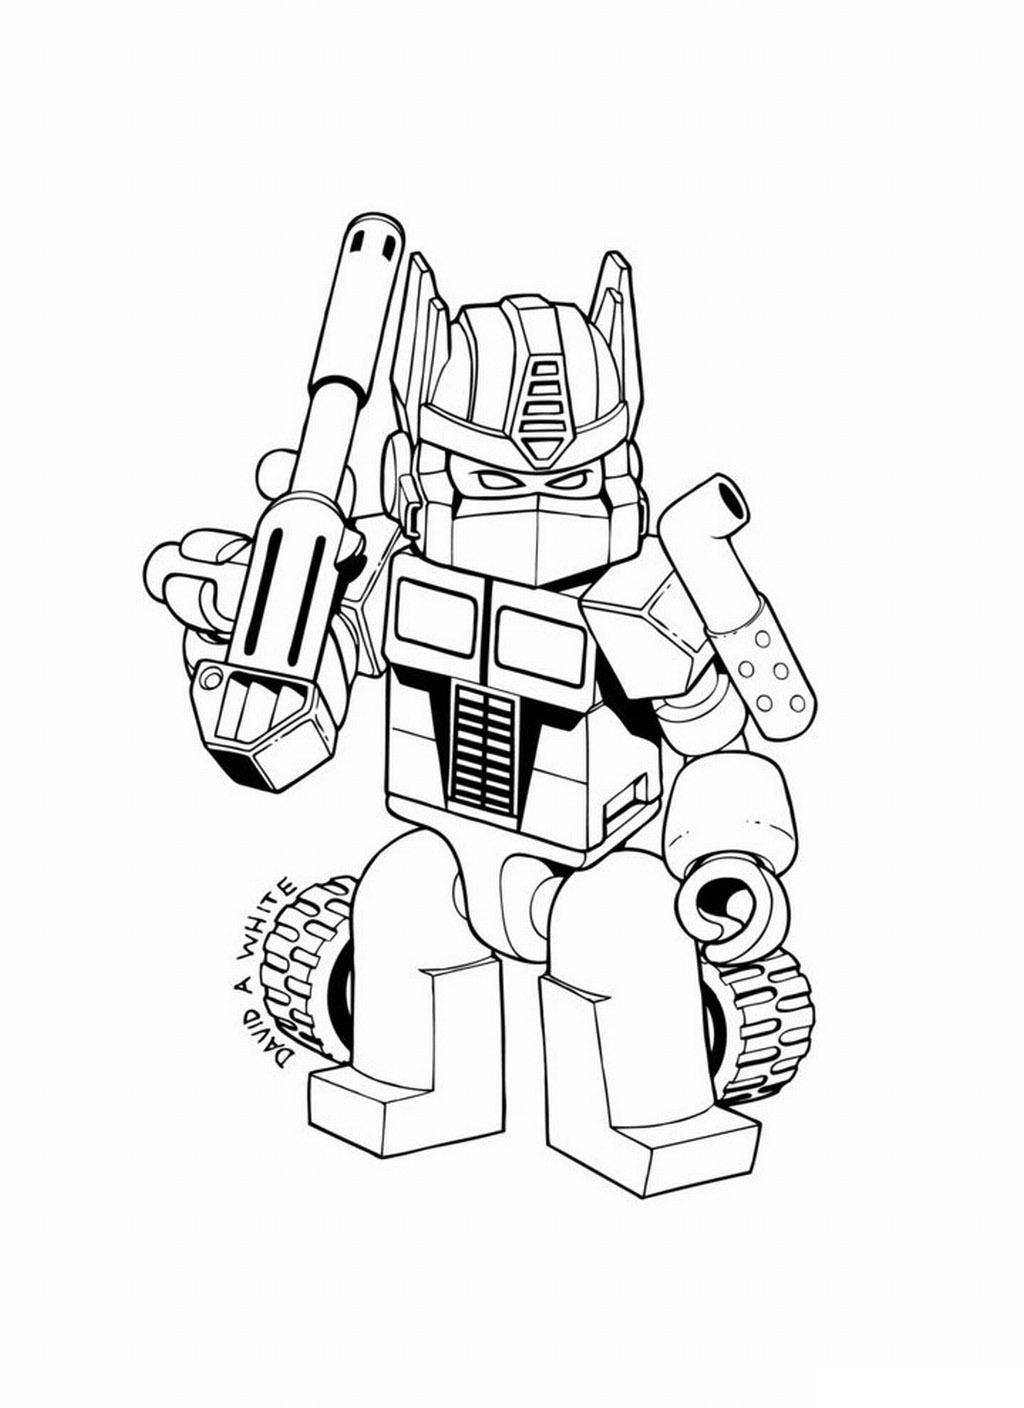 star wars robot coloring pages robot c 3po star wars coloring pages star wars coloring coloring robot wars pages star